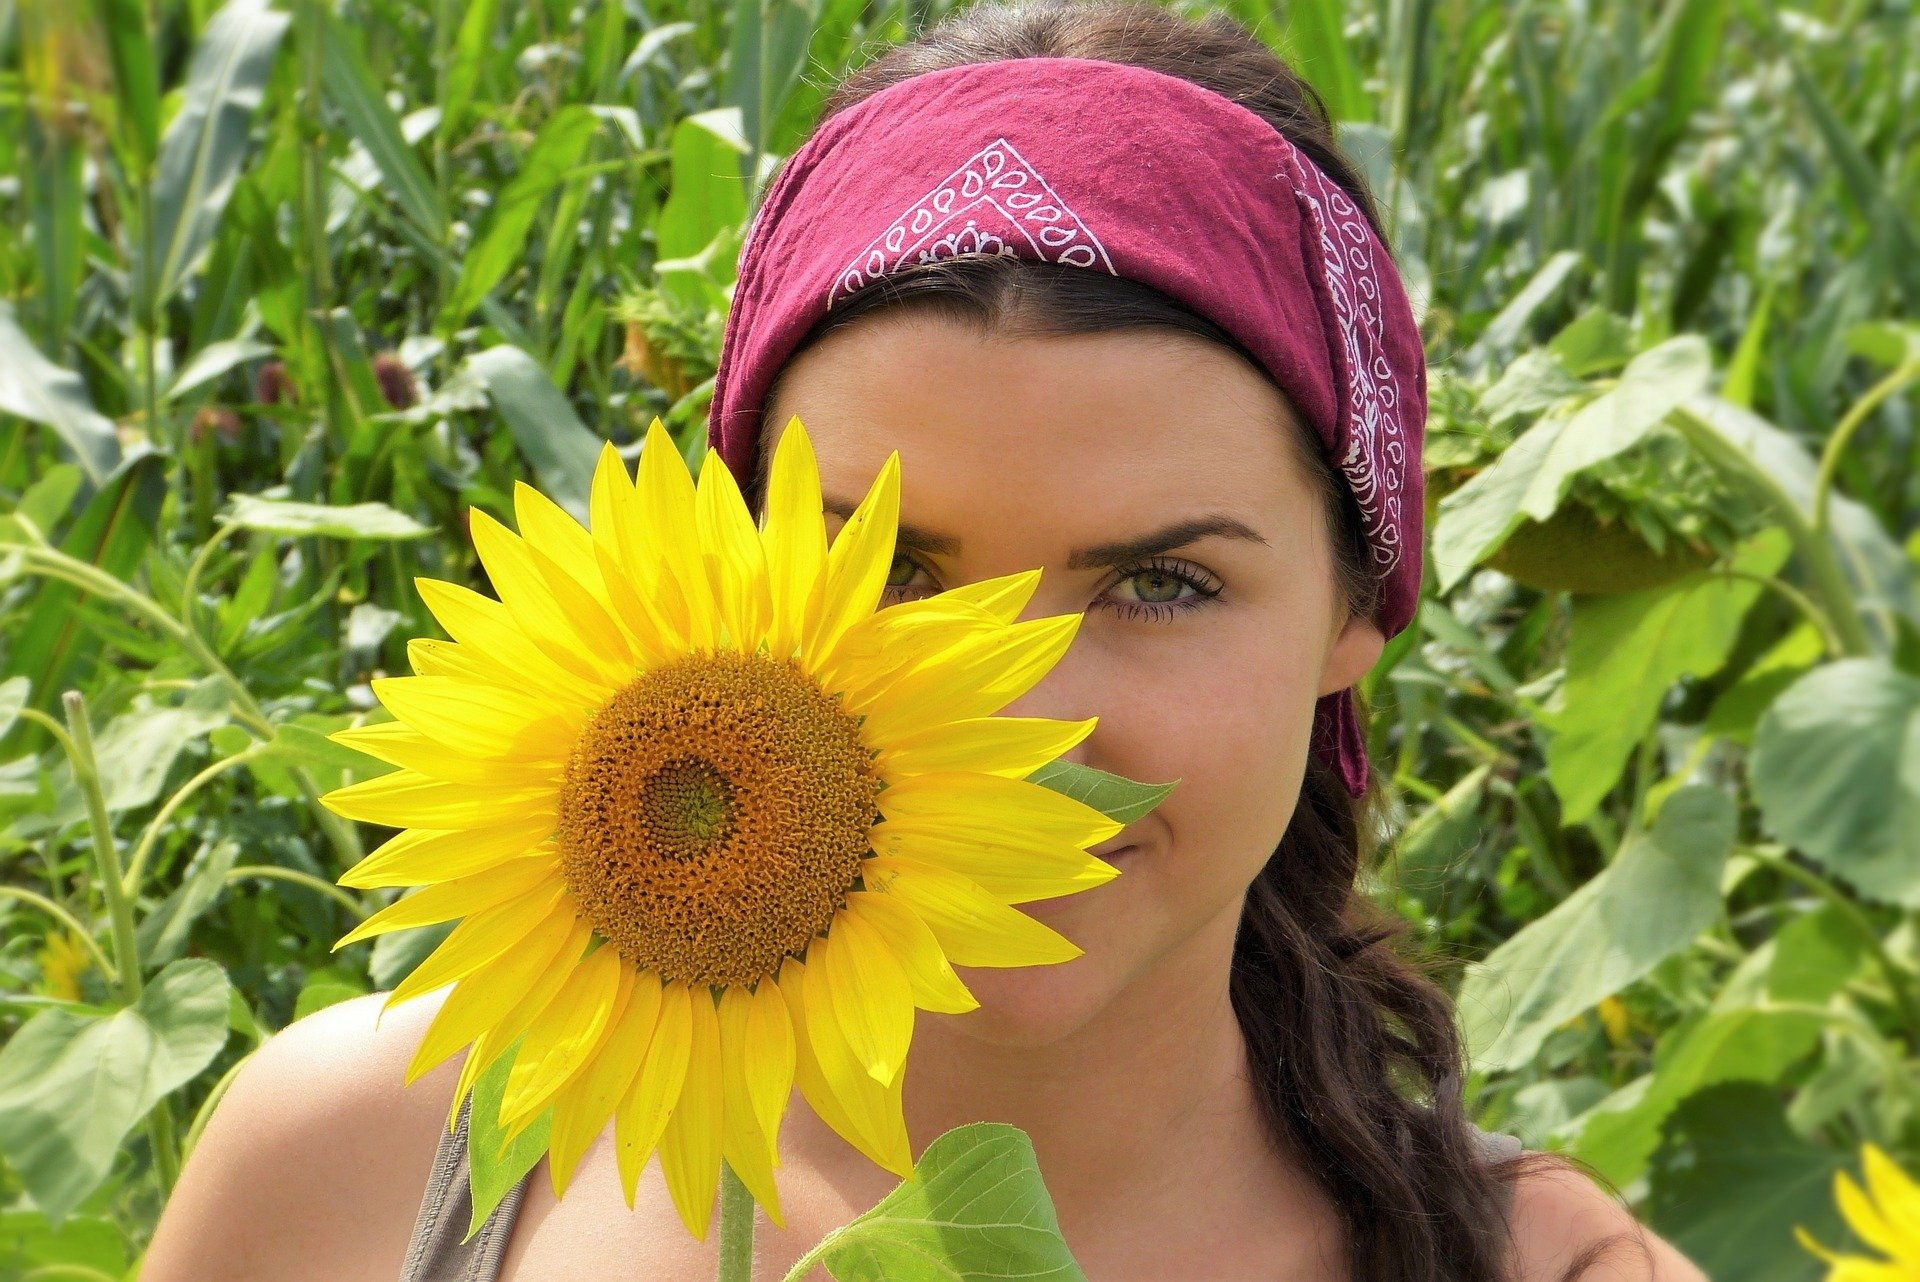 Sunflower with girl